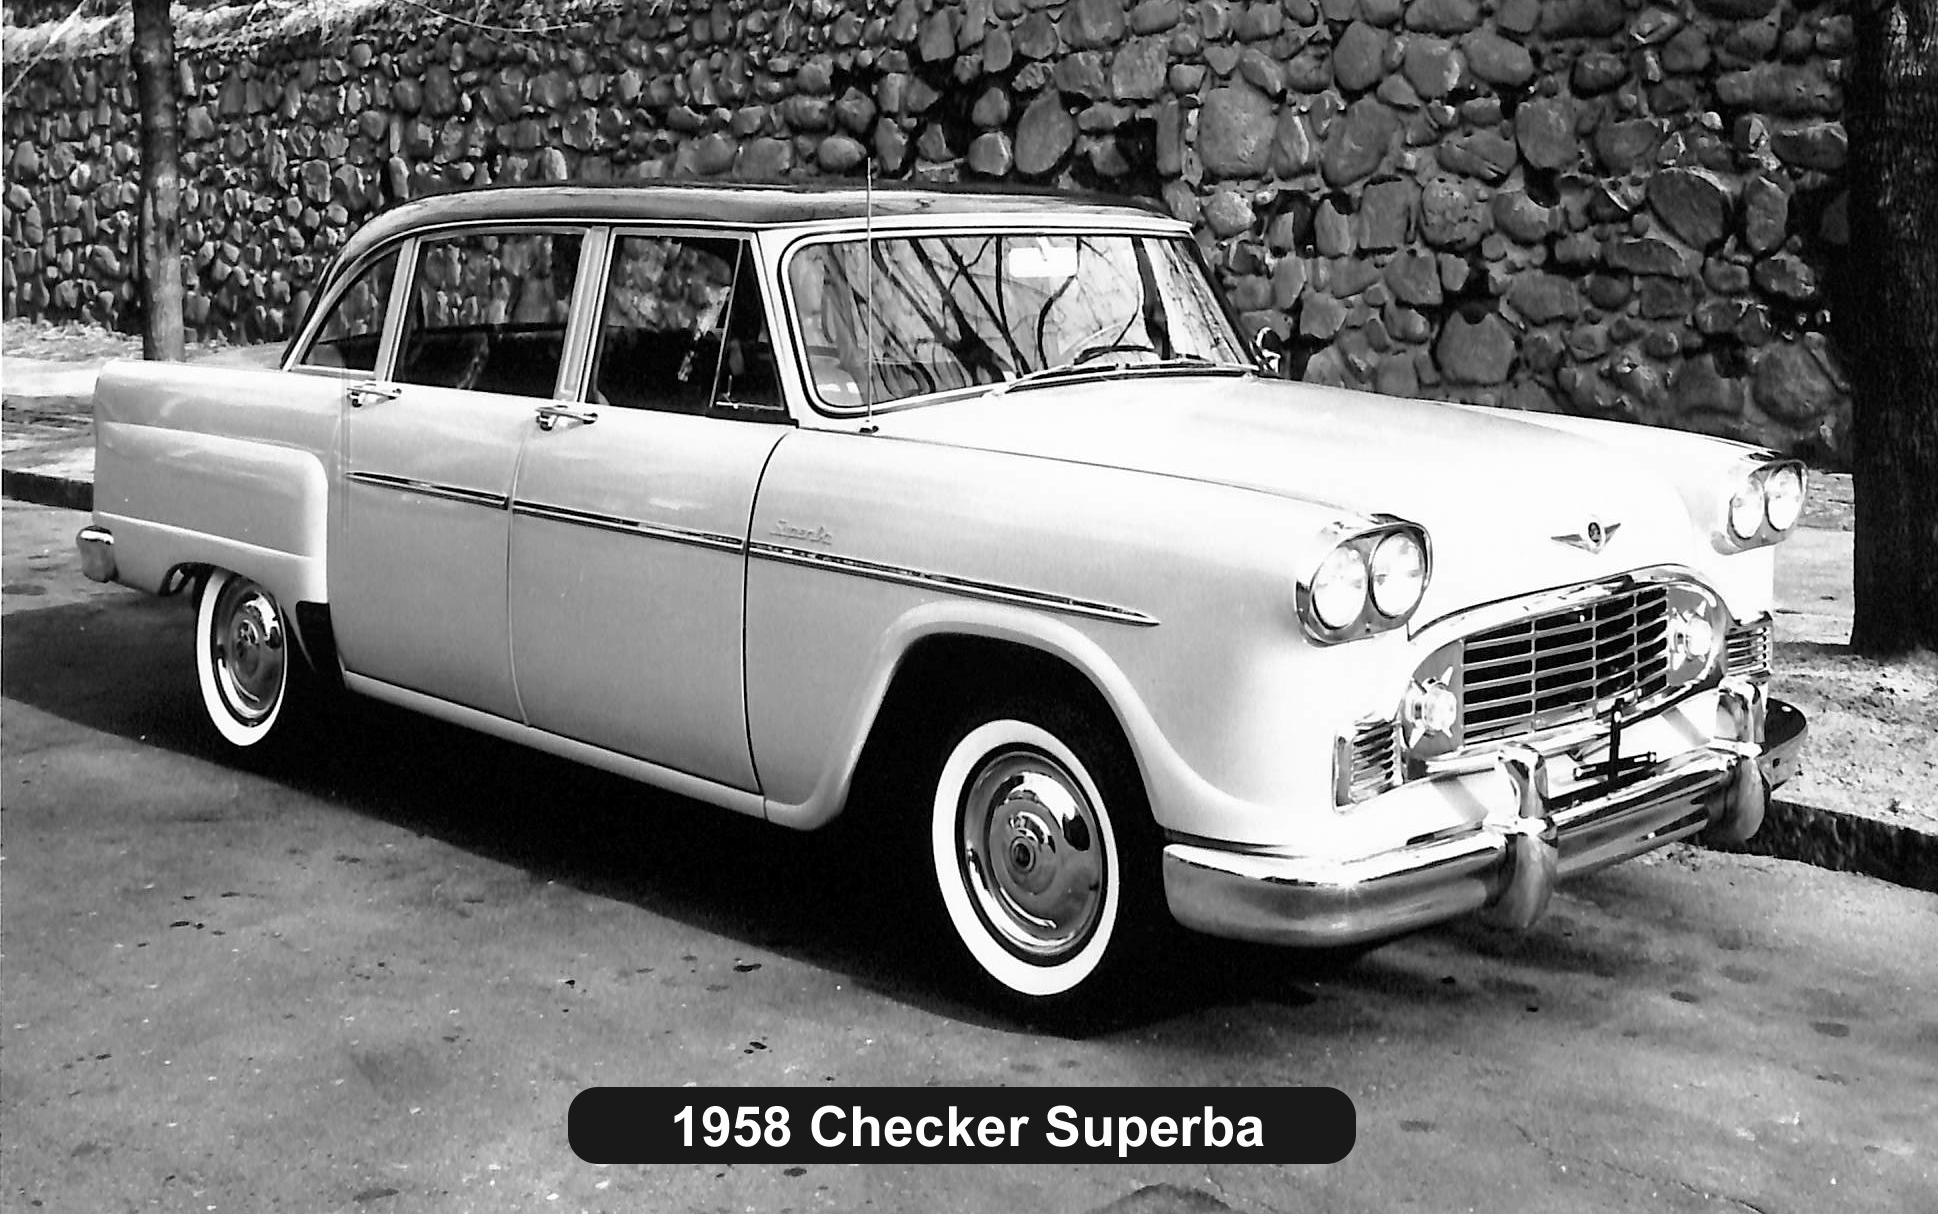 1958 Checker Superba BW Photo